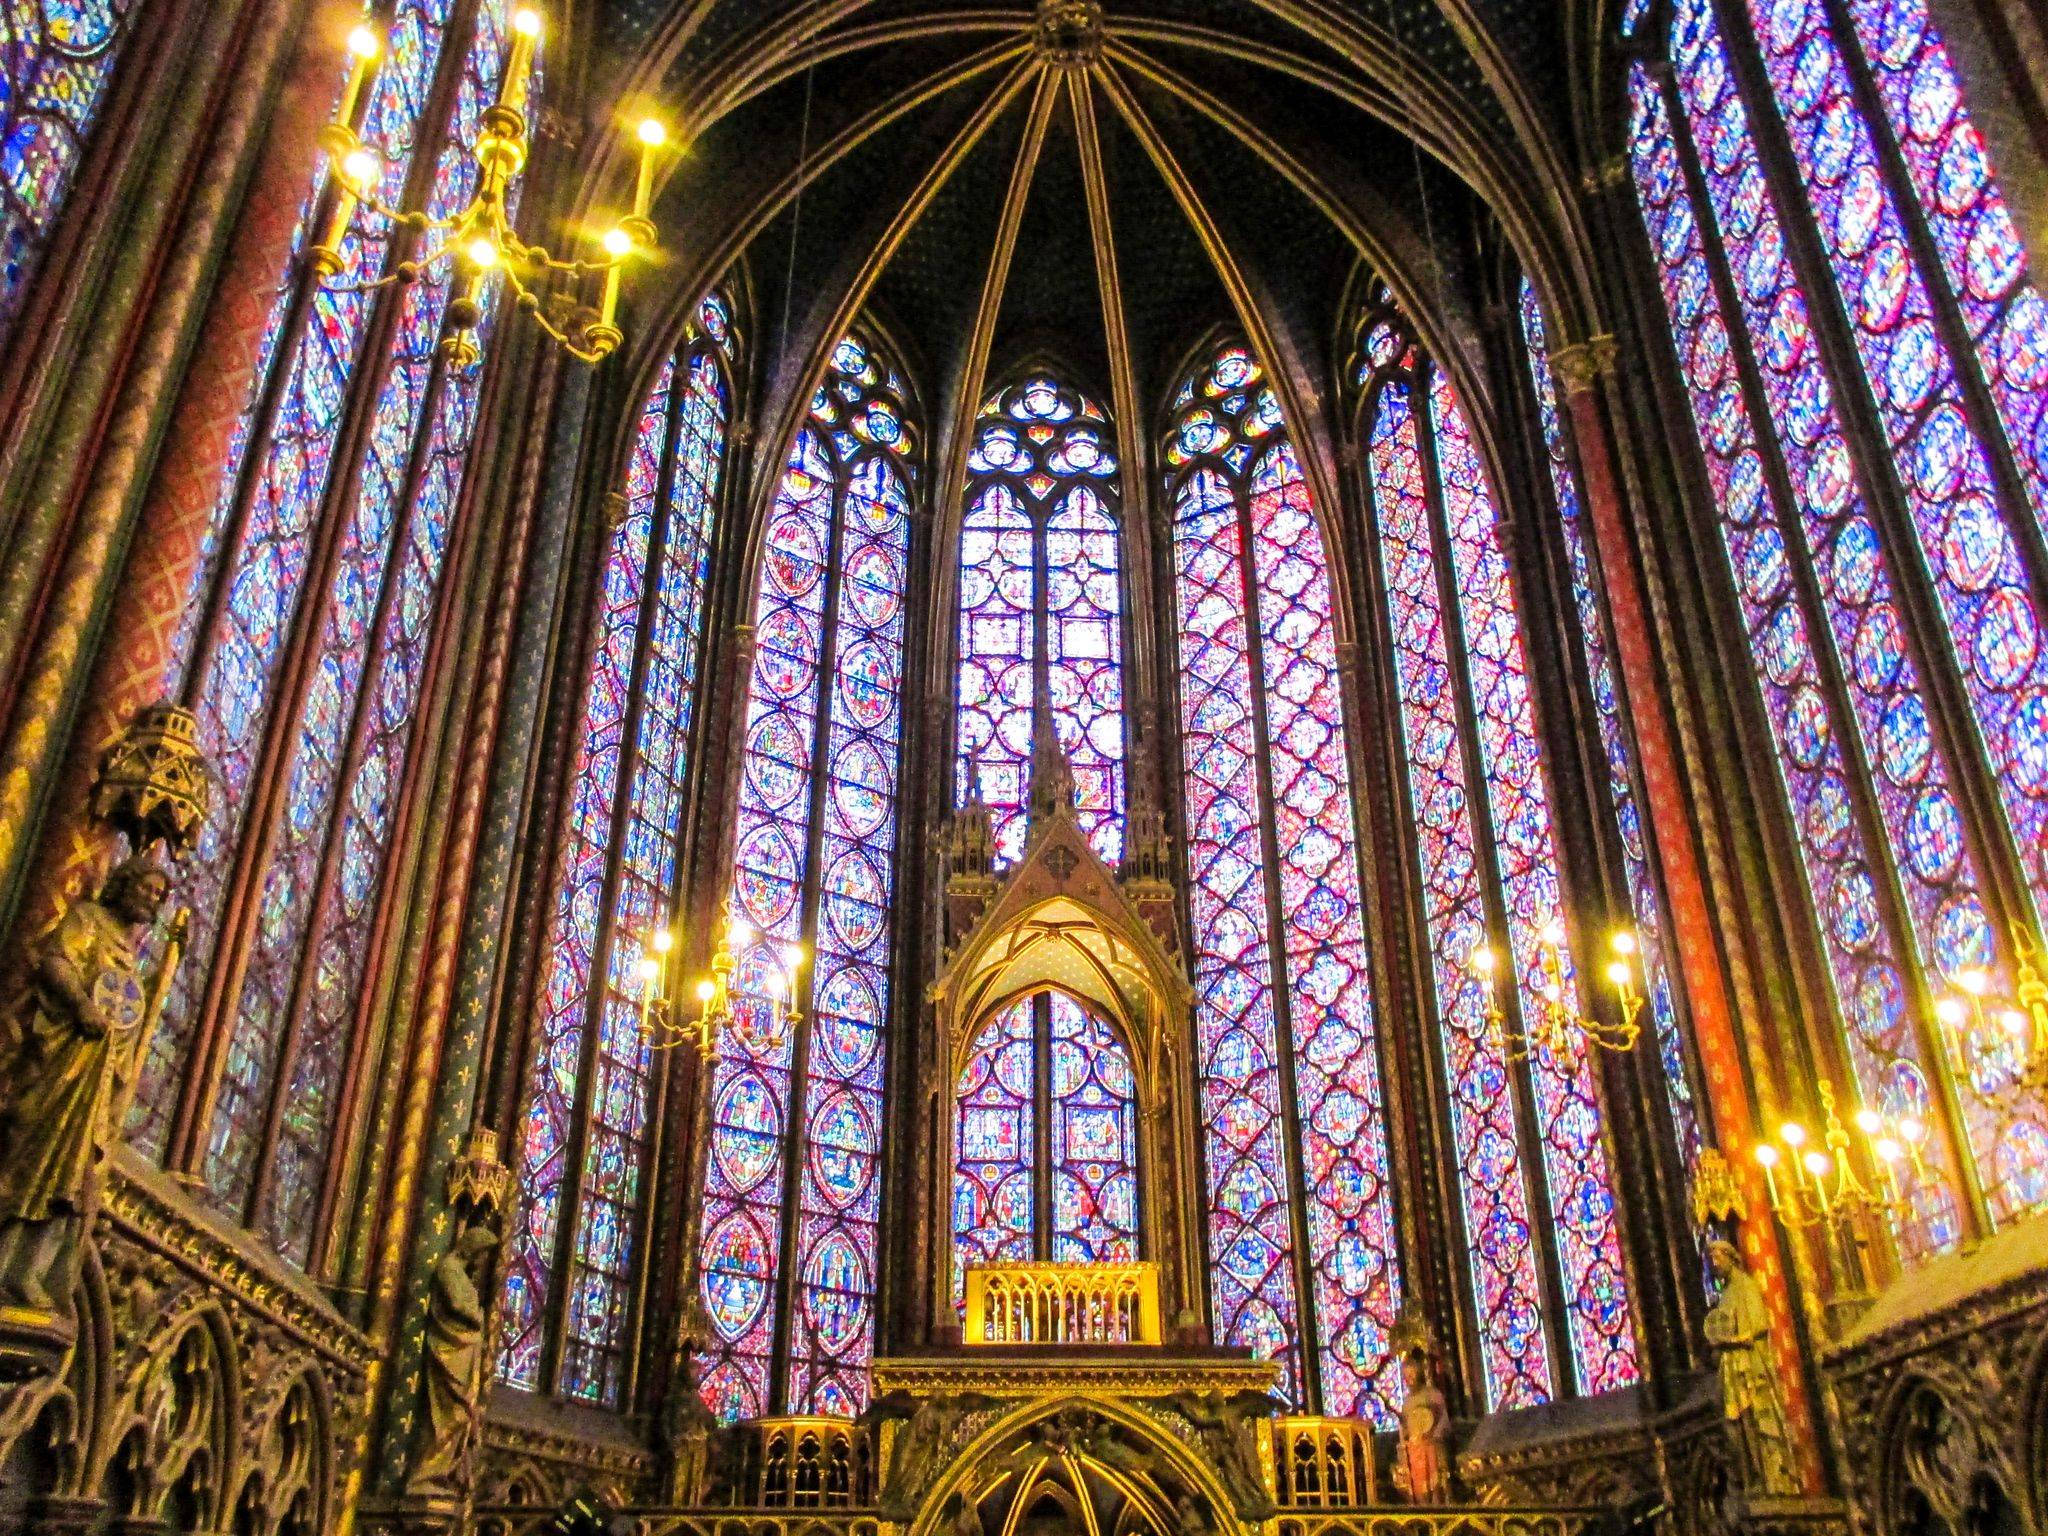 first time in paris tips: go inside all the churches